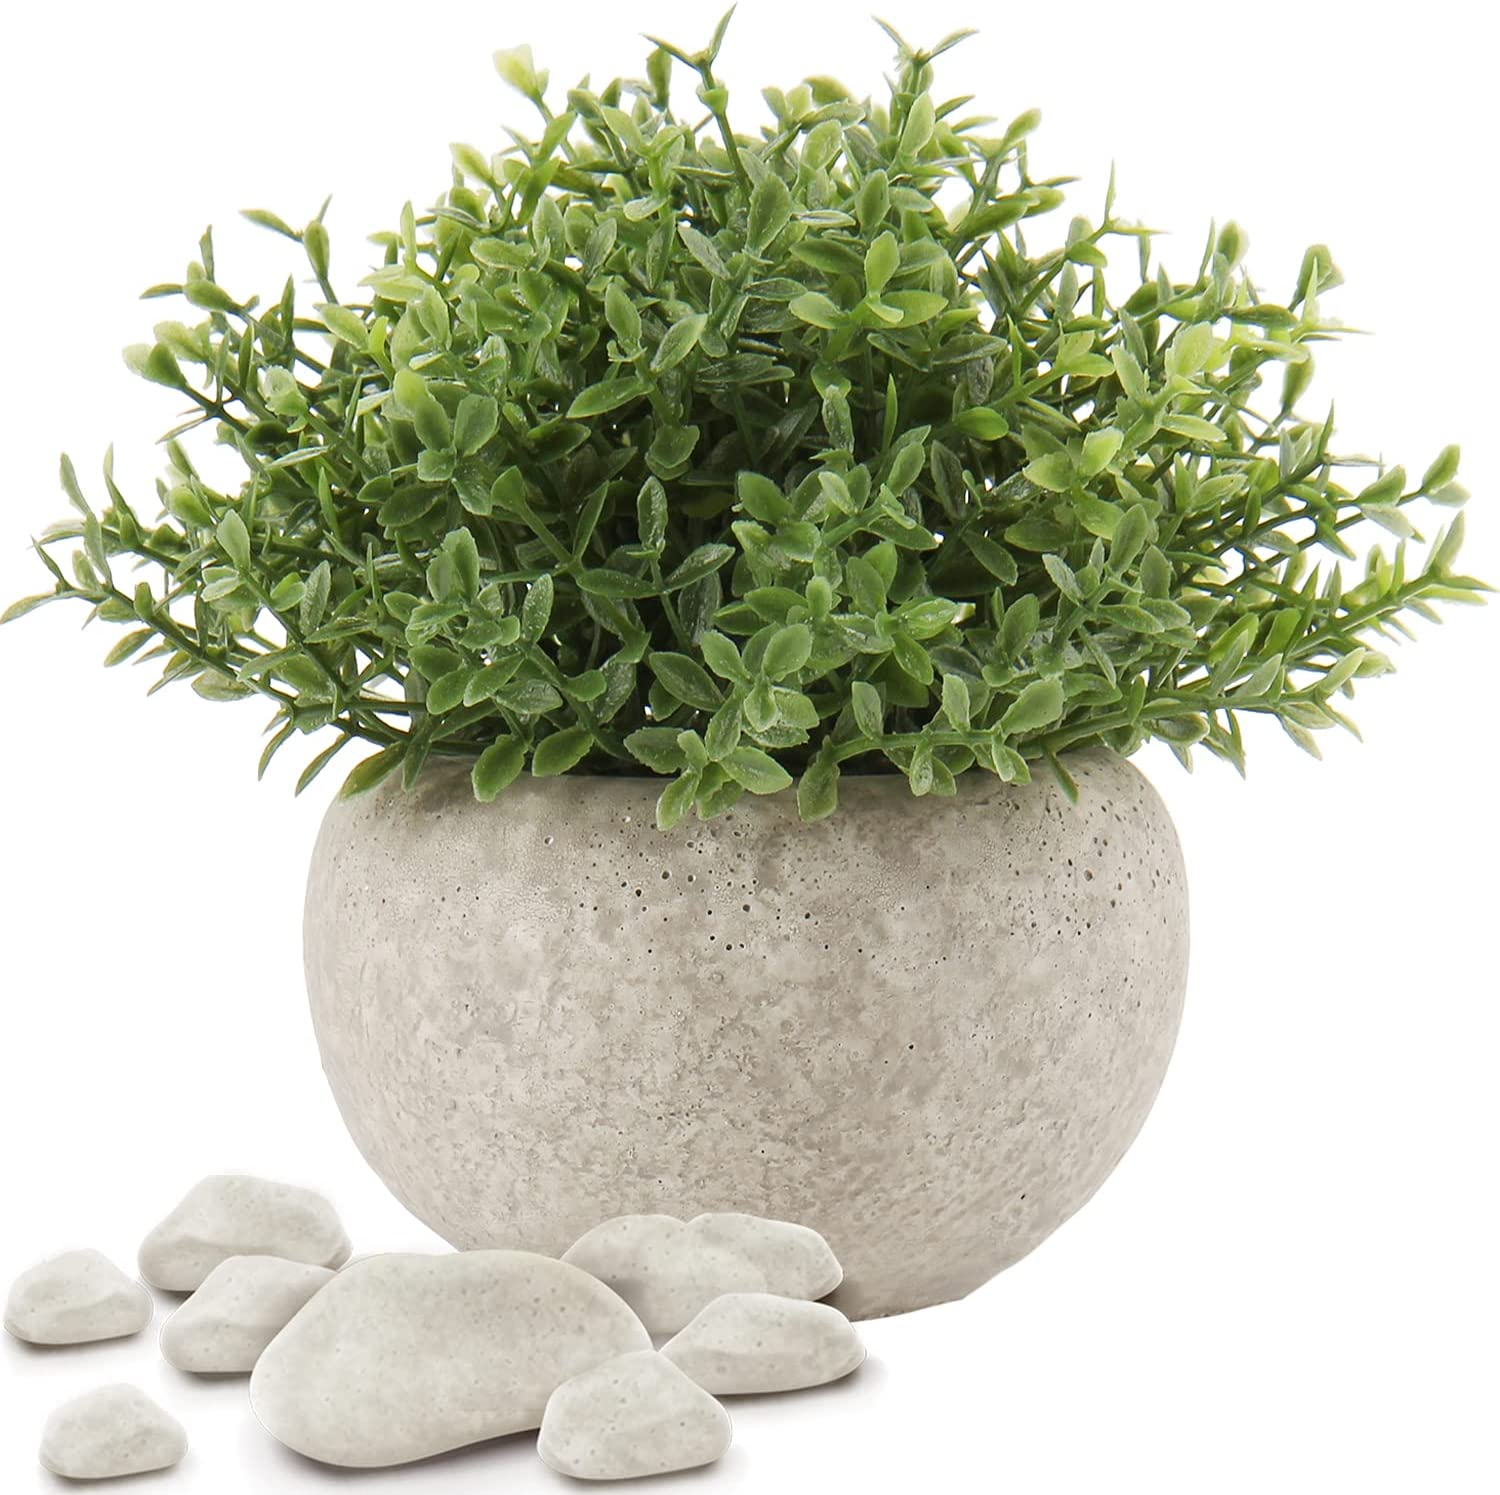 Artificial Mini Potted Plants Faux Plants Indoor Fake Green Grass Small Plastic Greenery Topiary Shrubs Plant with Cement Pots for Home Office Desk Bathroom Shelf Decor